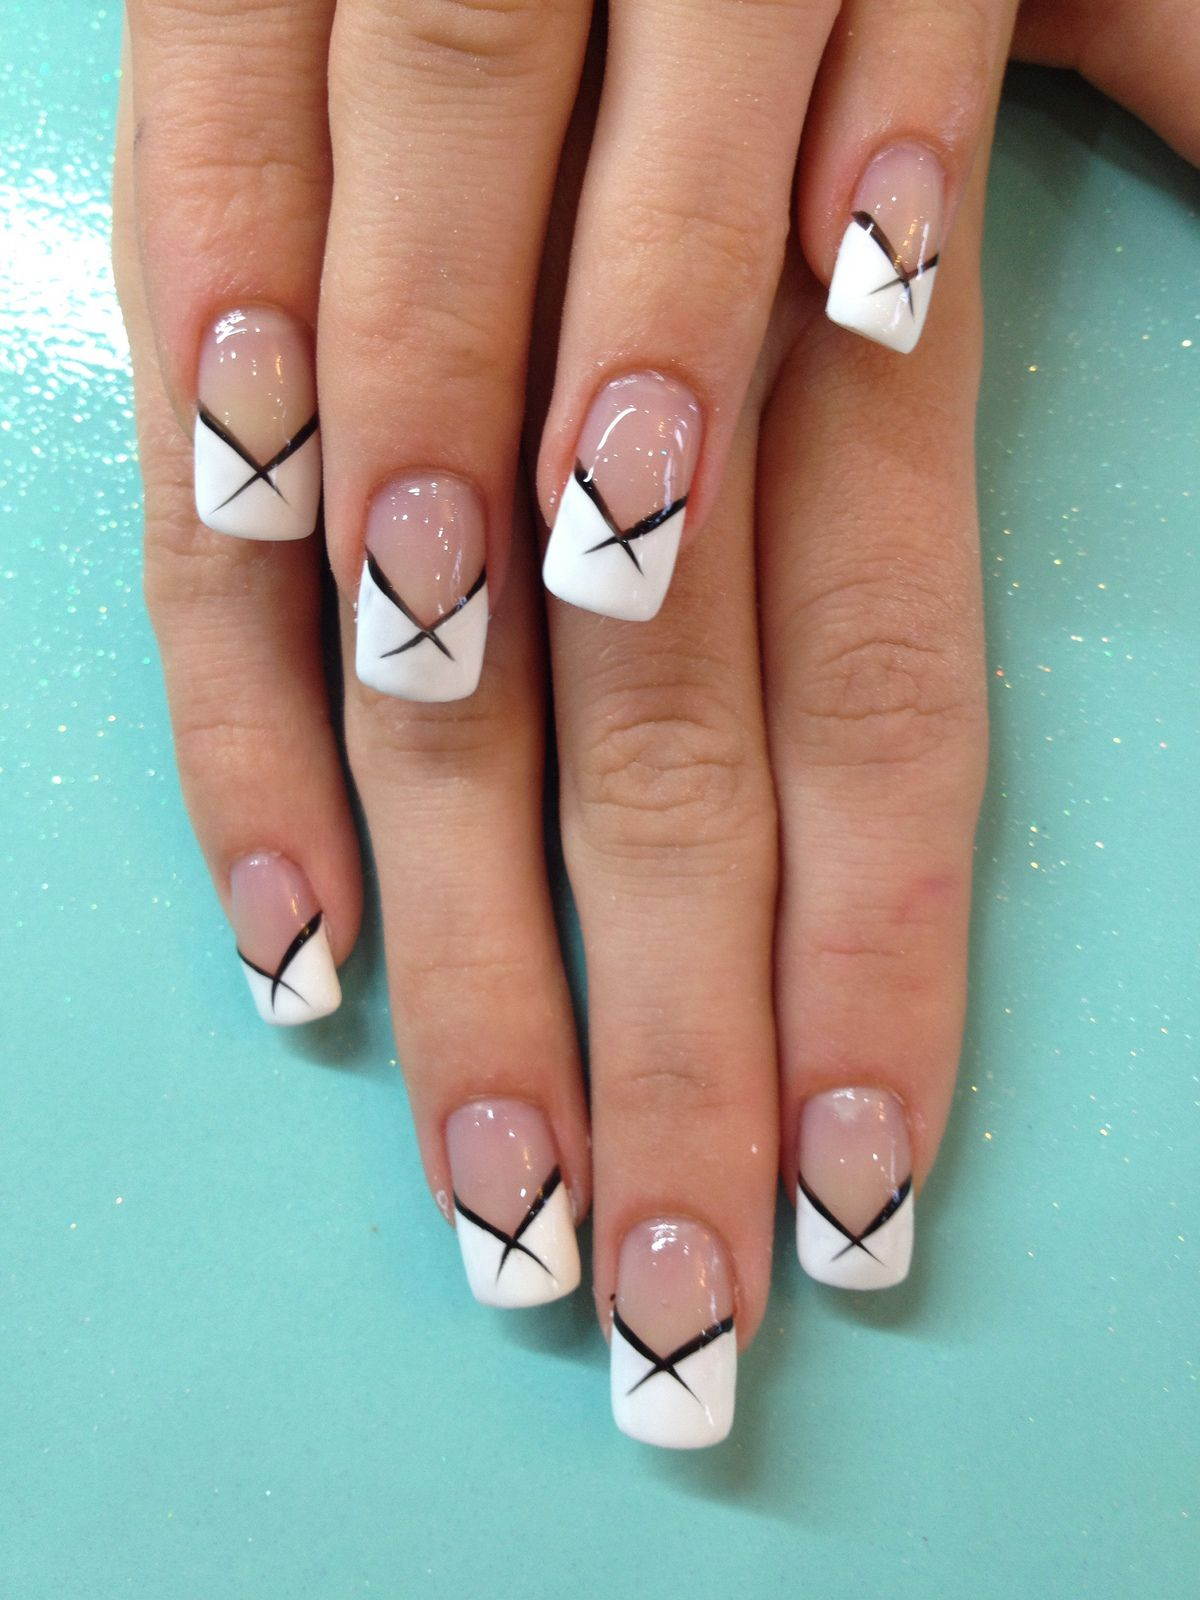 Cool White French tips with black flick nail art   Flickr - Photo ...